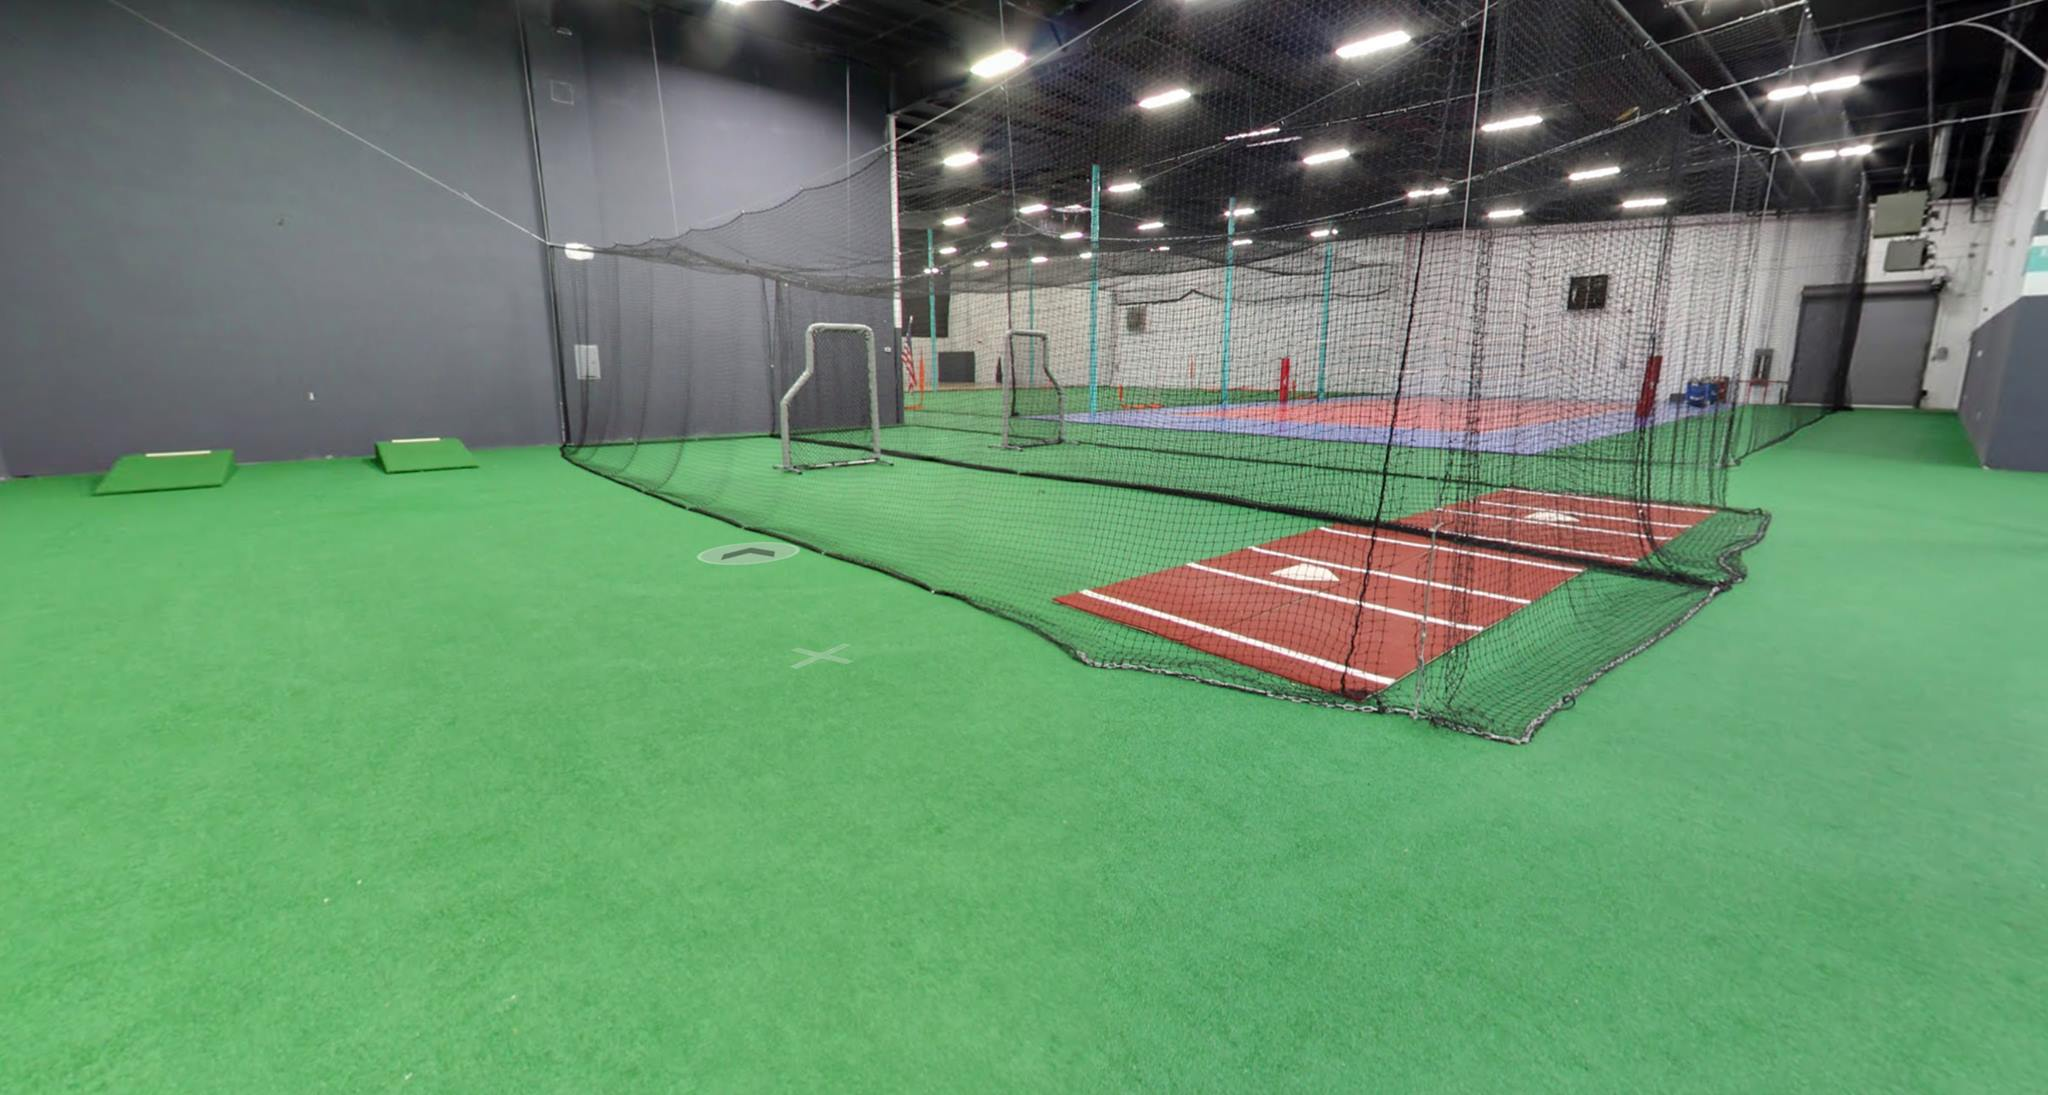 Batting cages in clarksville tn